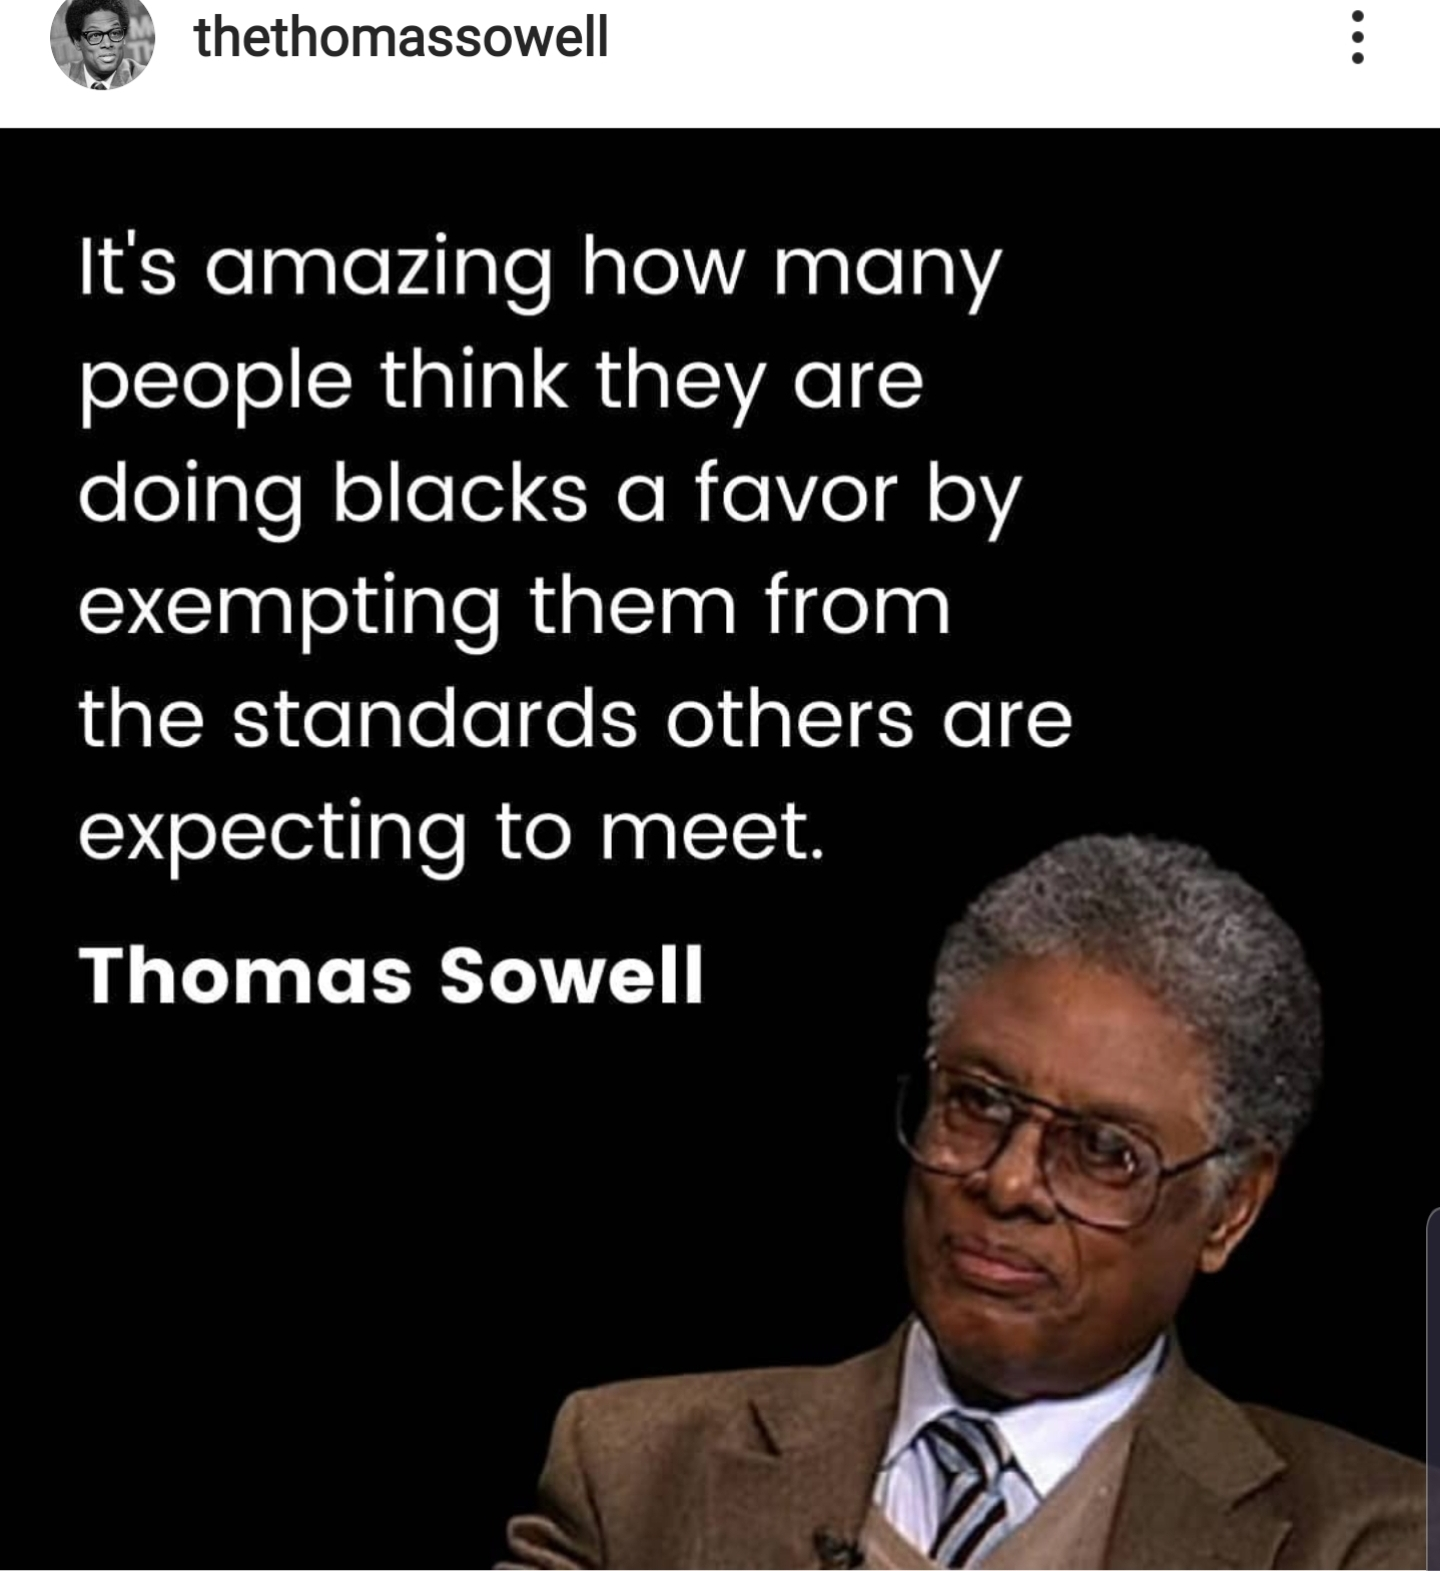 Thomas Sowell (born June 30, 1930) is an American economist, social theorist, and senior fellow at Stanford University's Hoover Institution.